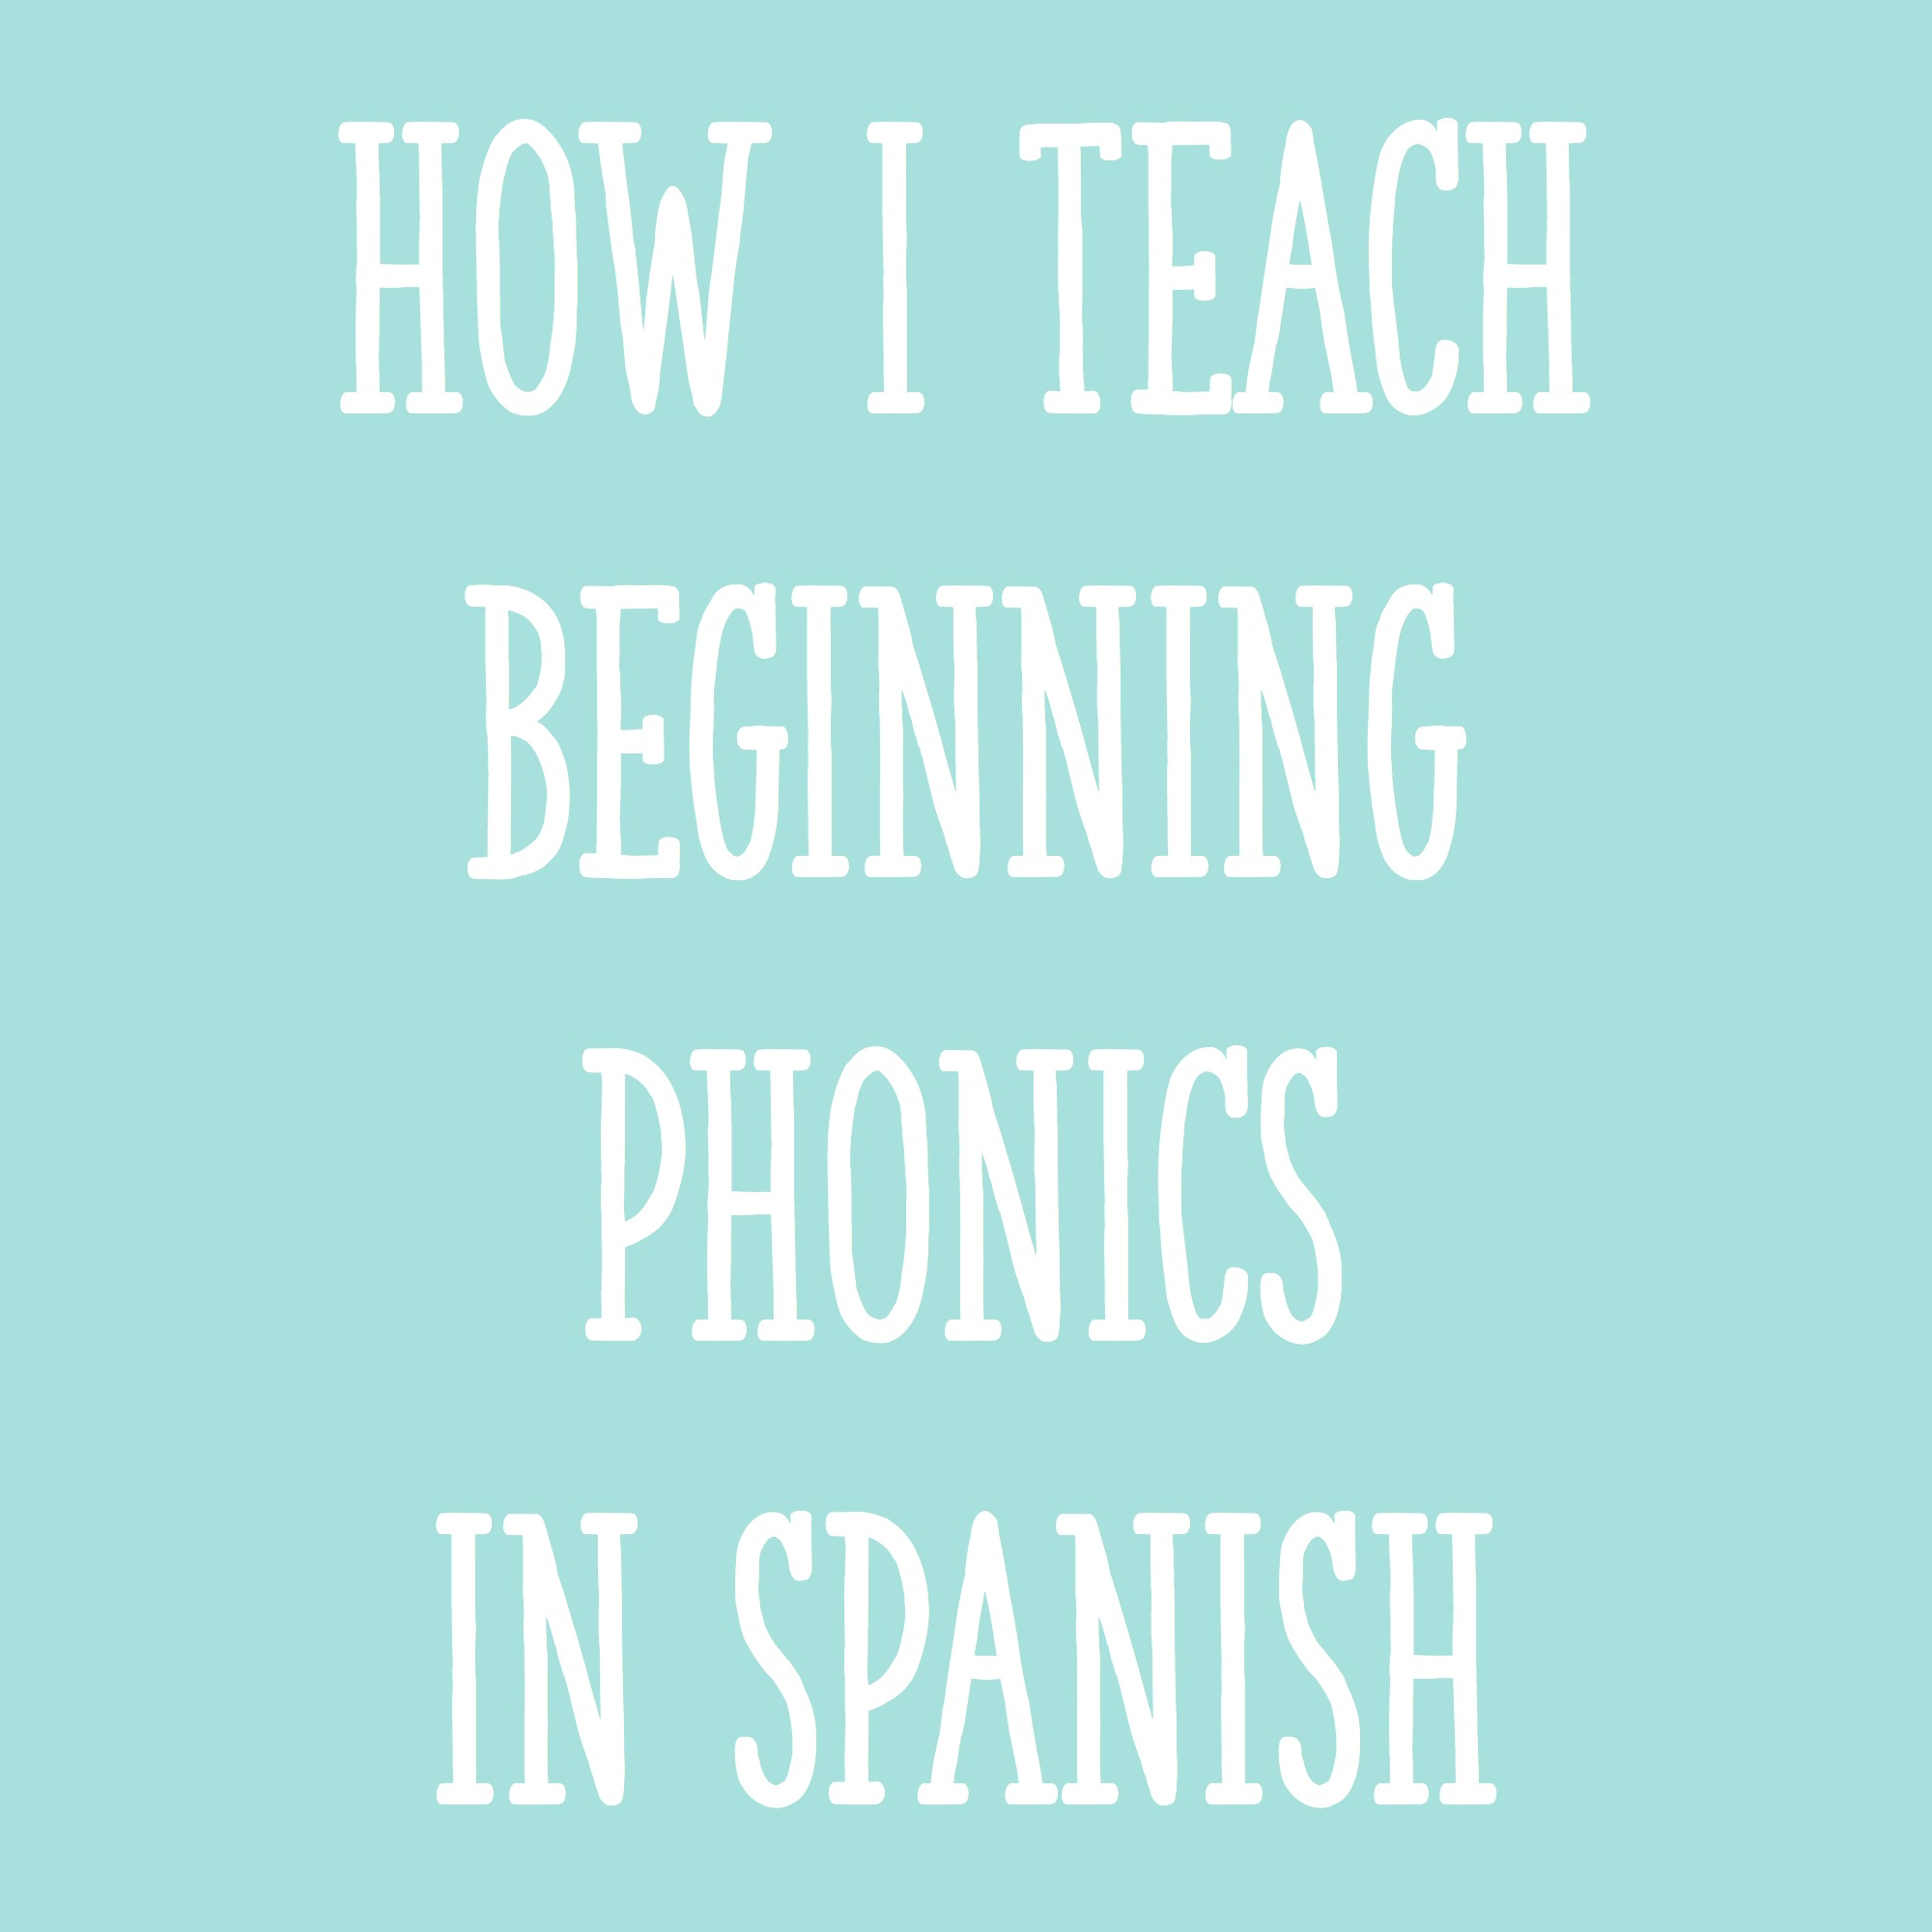 How I Teach Beginning Phonics in Spanish Learning at the Primary